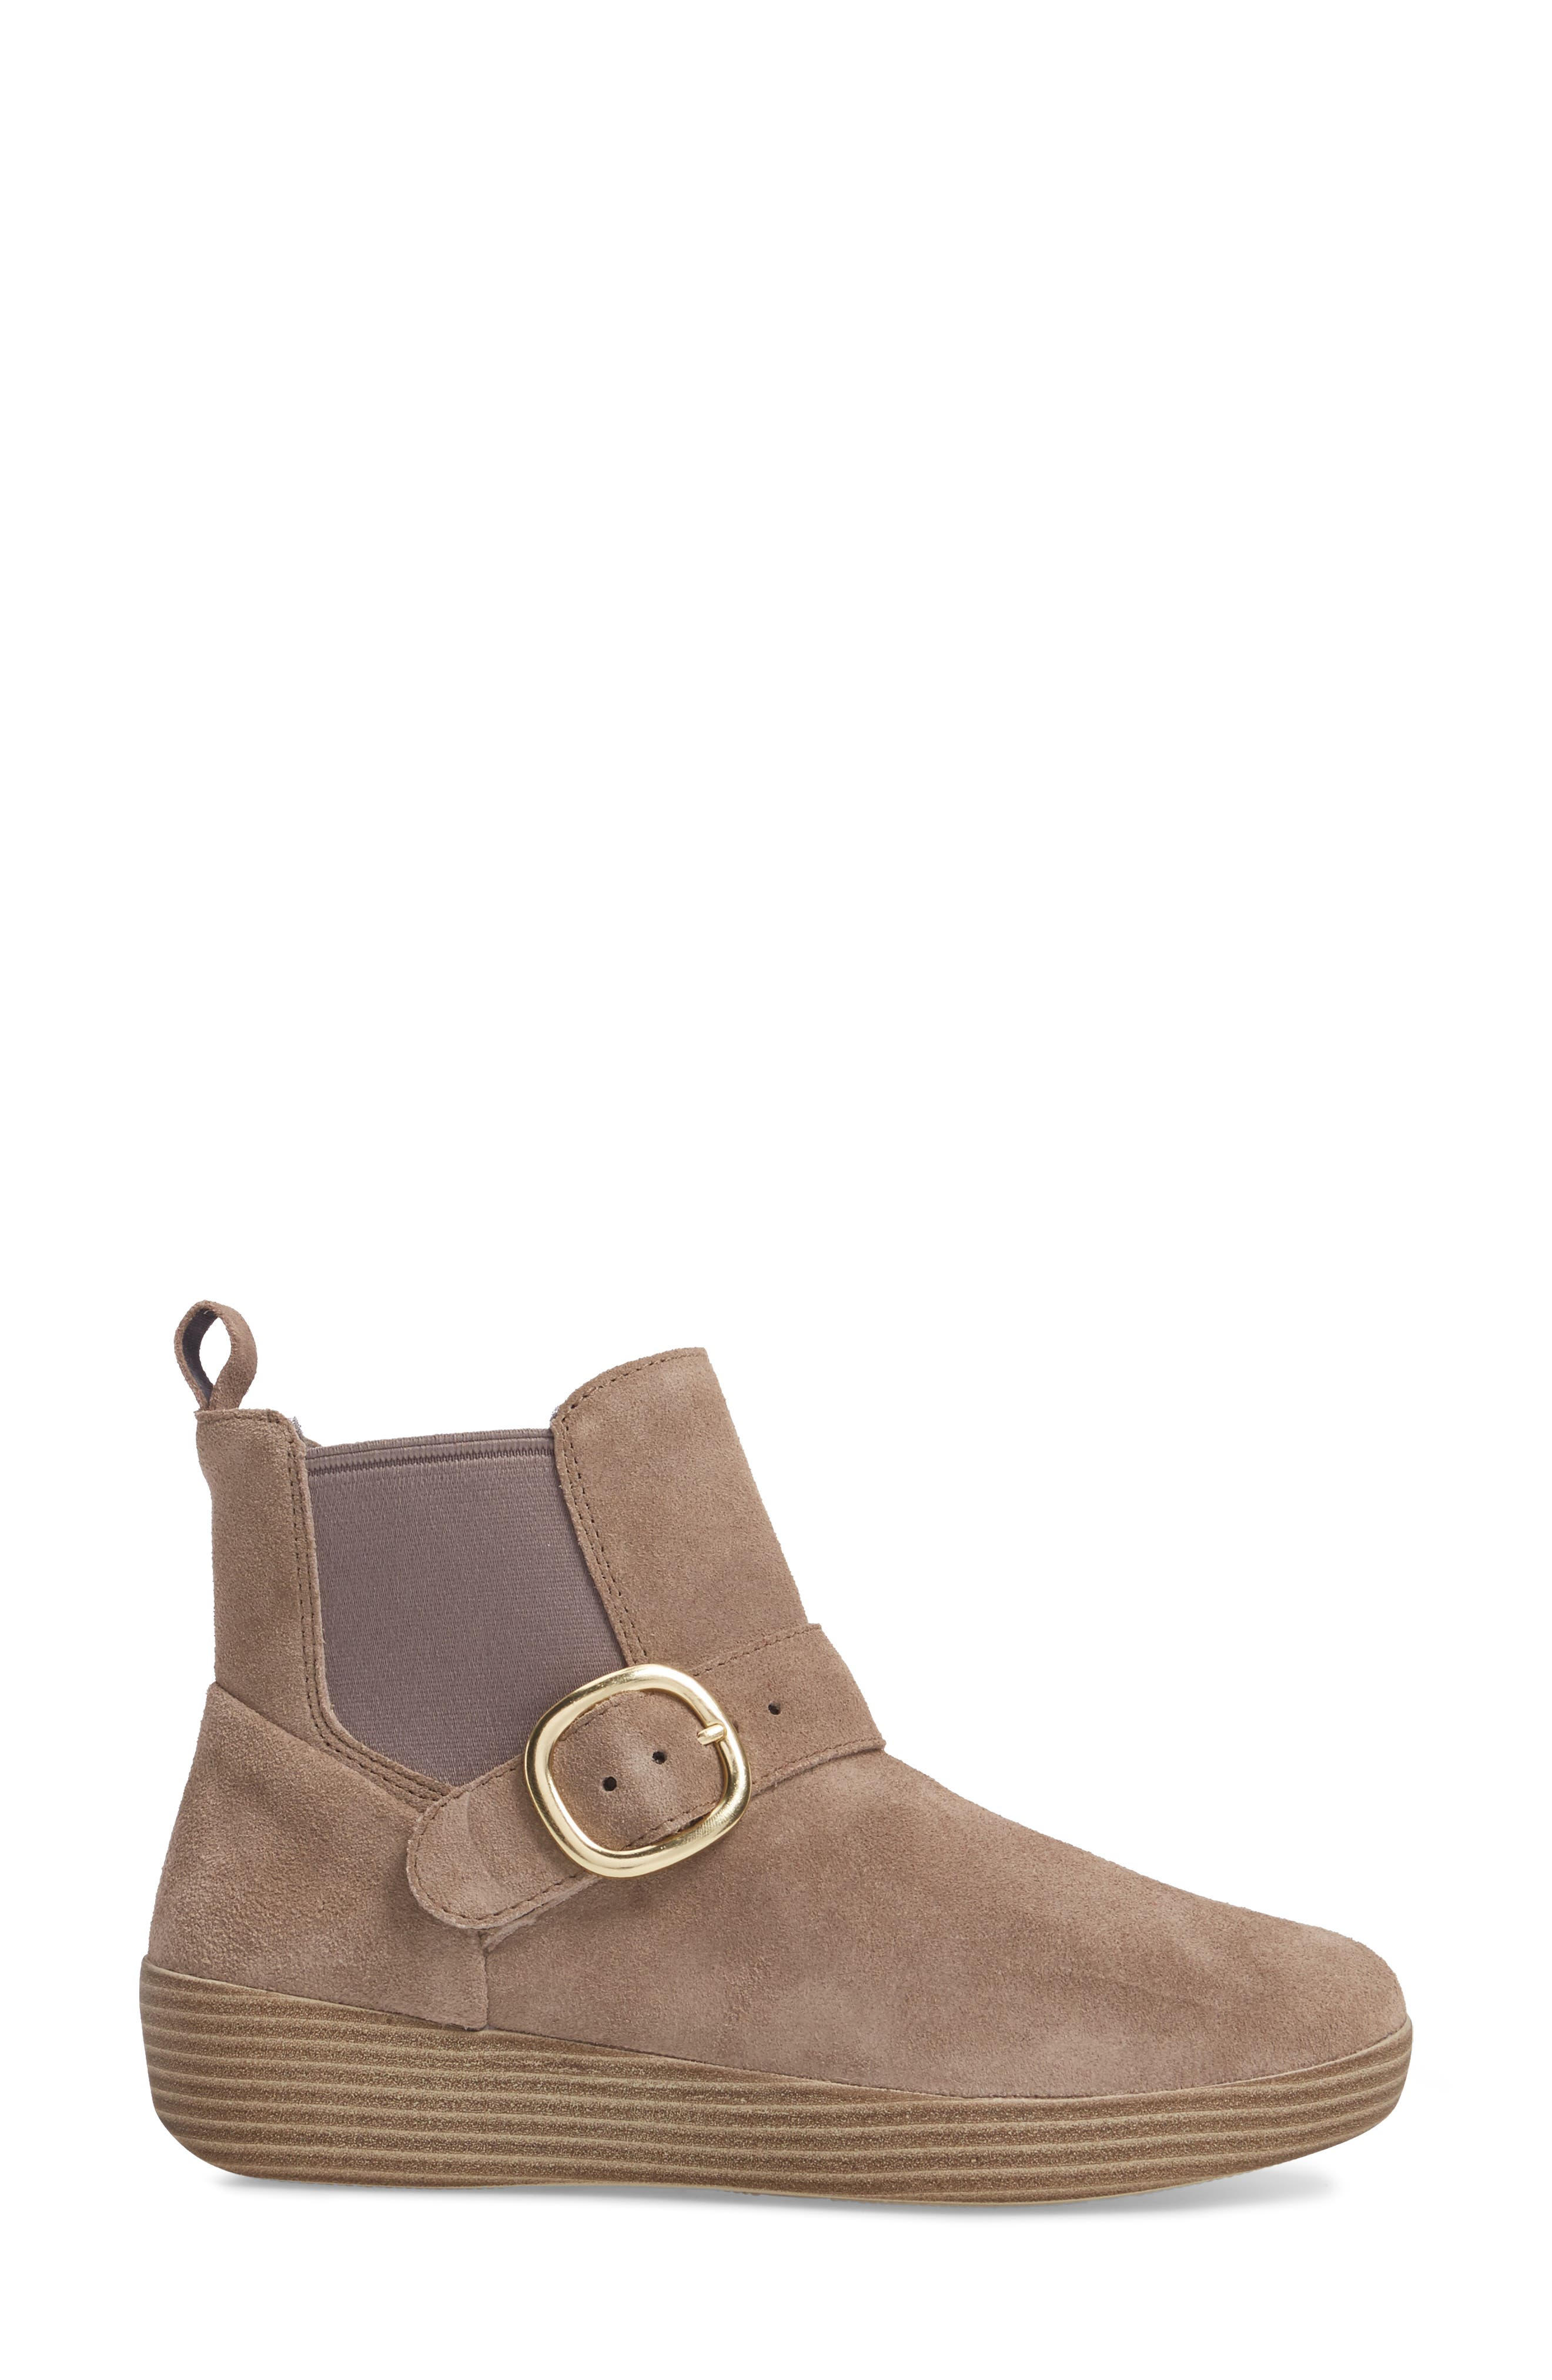 Superbuckle Chelsea Boot,                             Alternate thumbnail 3, color,